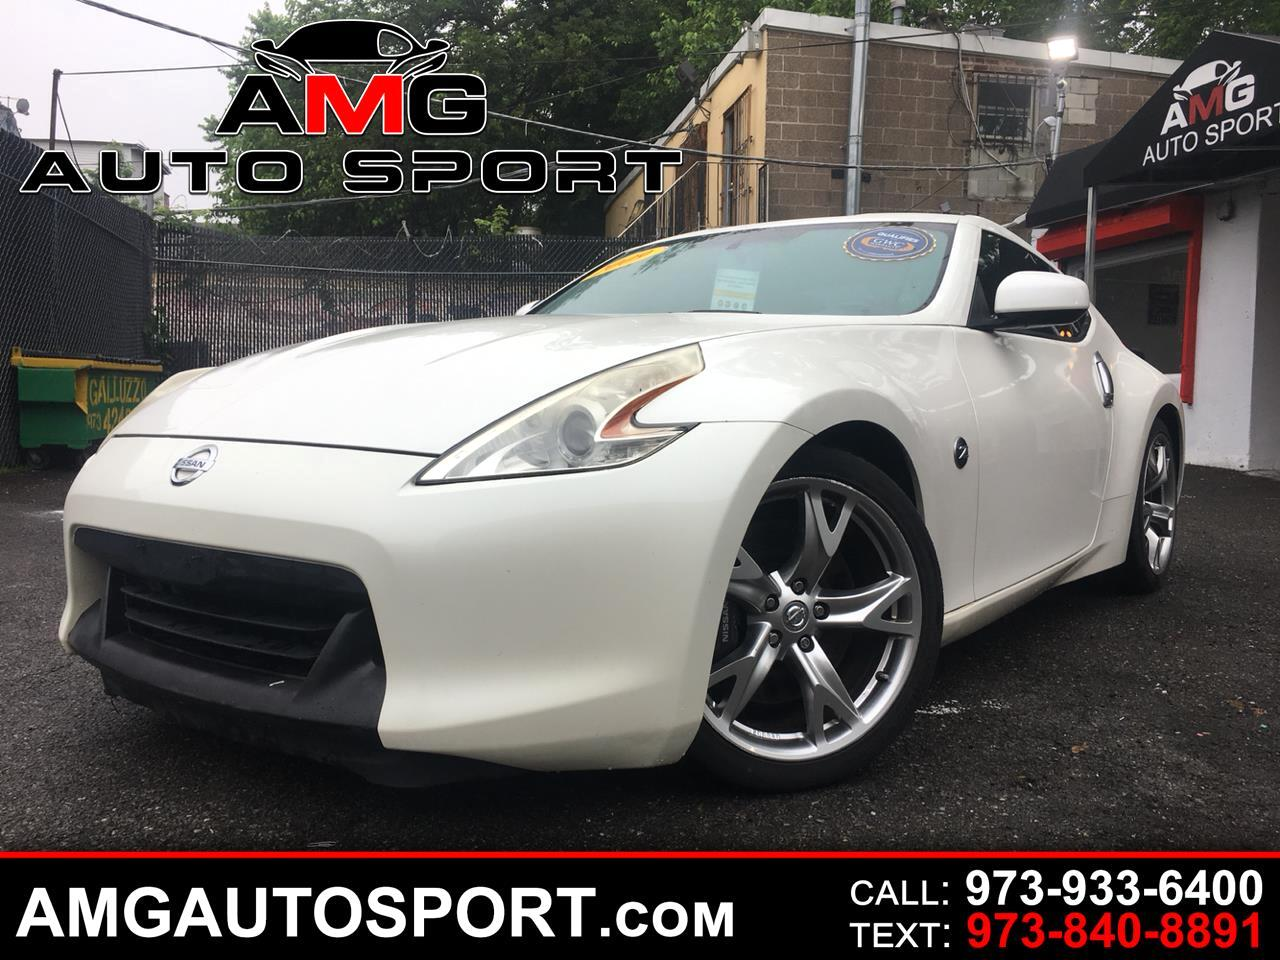 Used 2009 Nissan 370Z Coupe for Sale in Newark NJ 07104 AMG